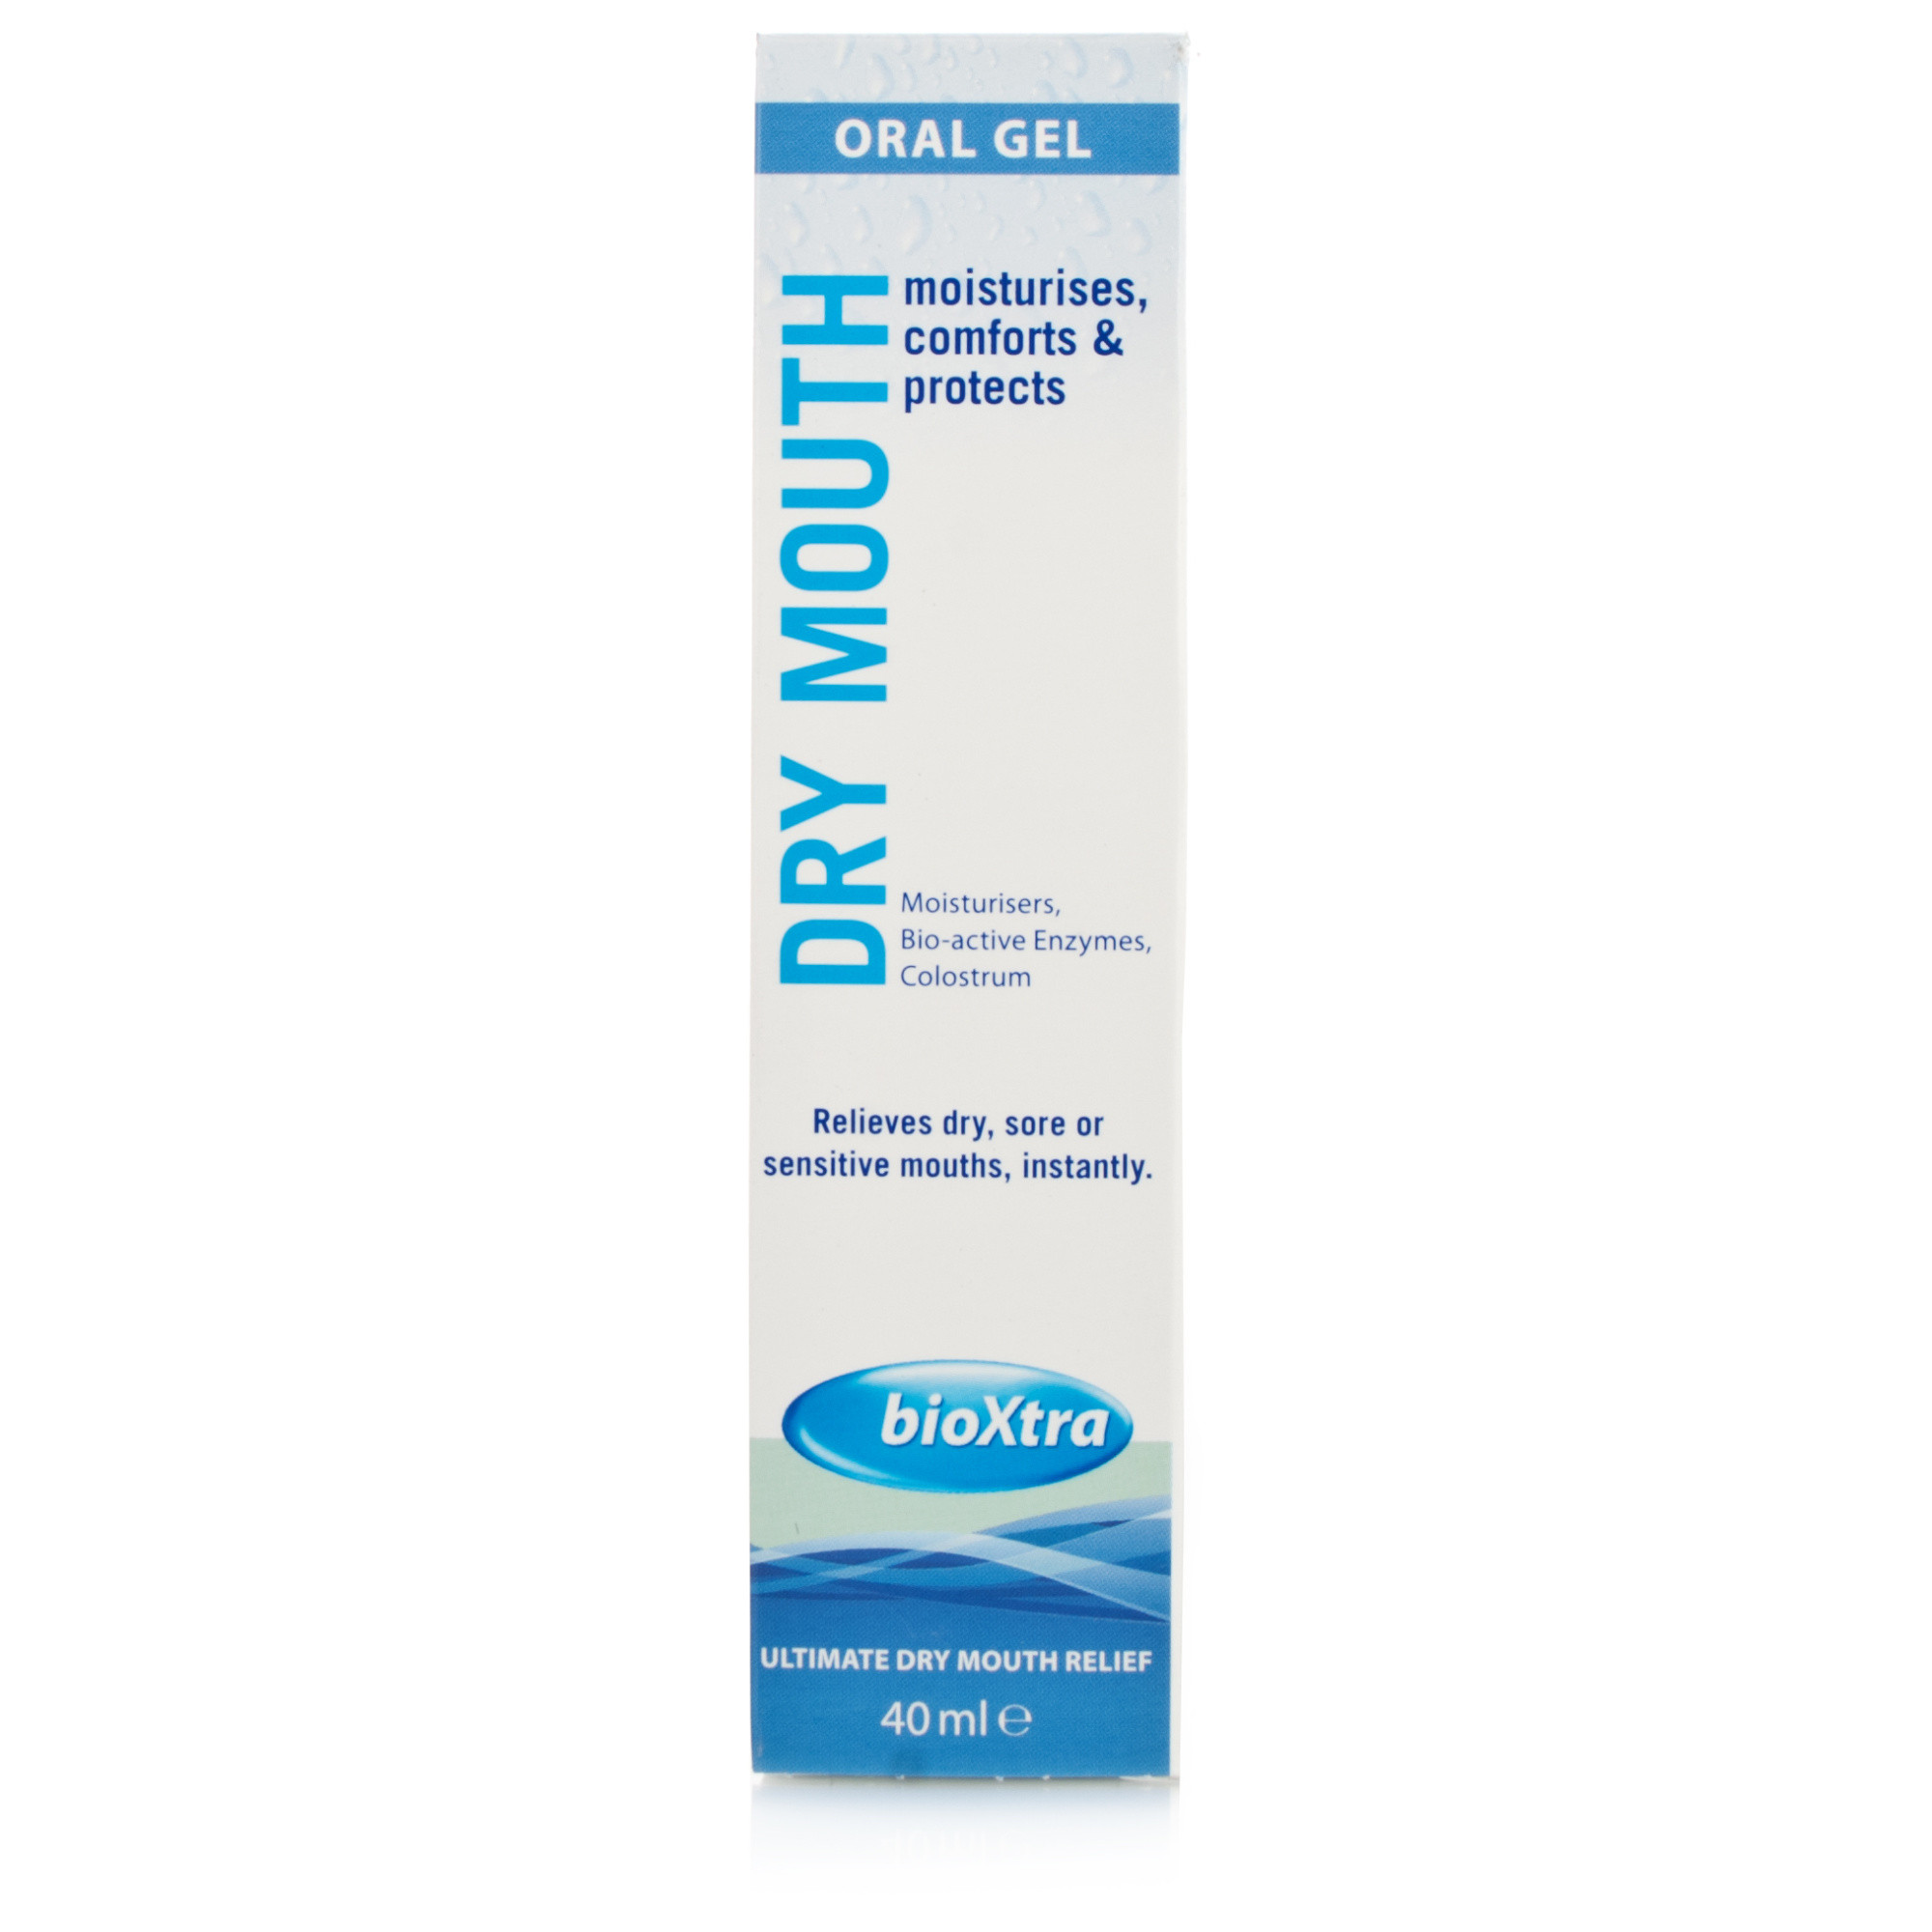 Bioxtra Dry Mouth Gel